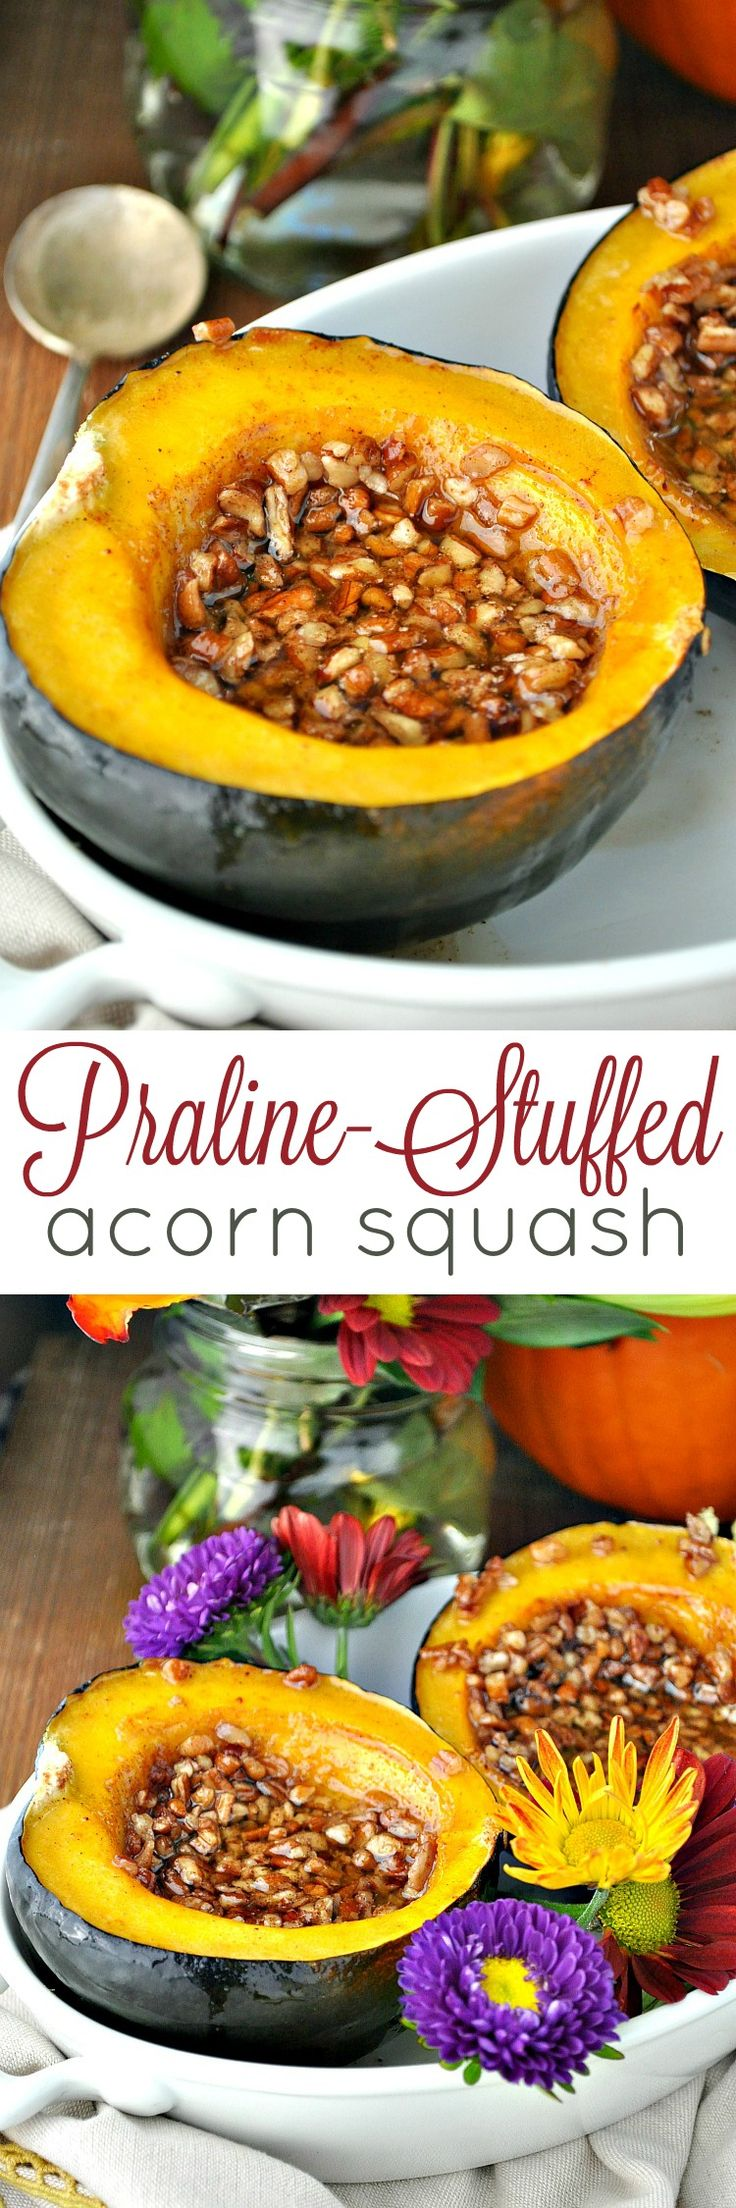 Praline Stuffed Acorn Squash: an easy side dish that's perfect for Thanksgiving or weeknight fall dinners!